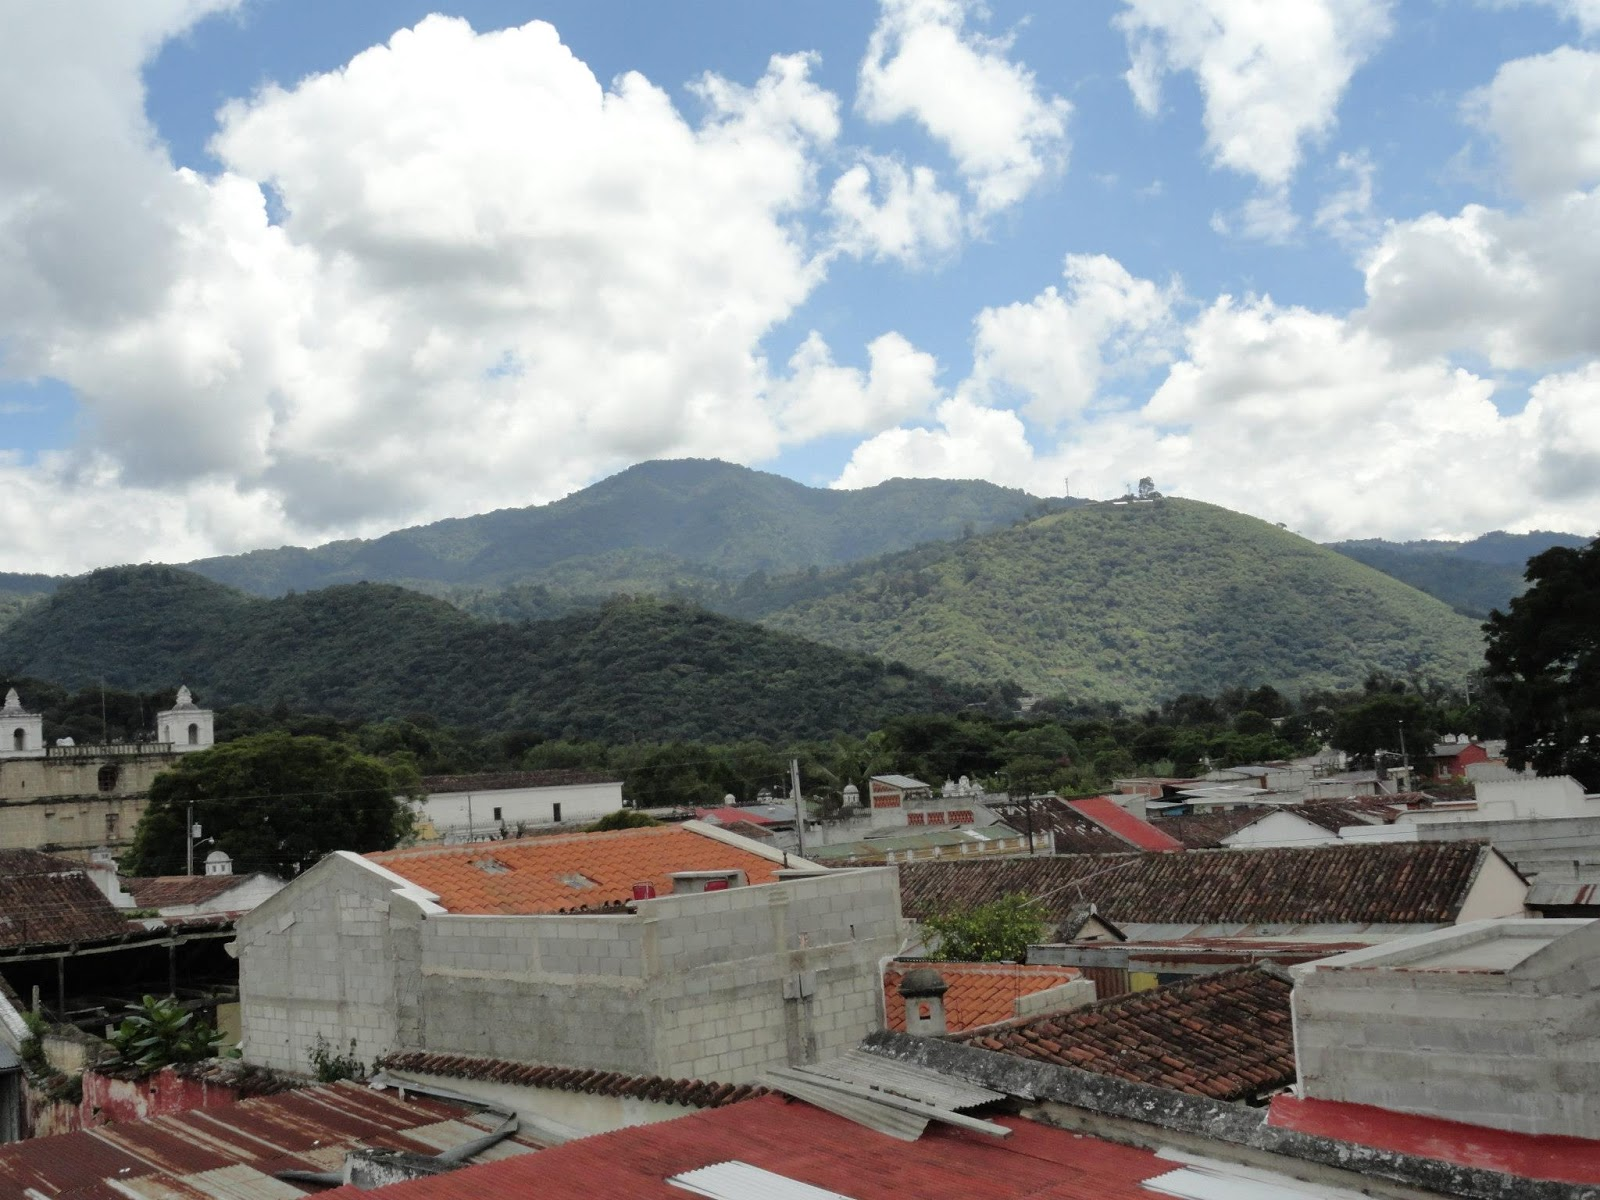 the next morning we decide to just wander round the town and check out some sights antigua is a small town with old colonial buildings and is one of